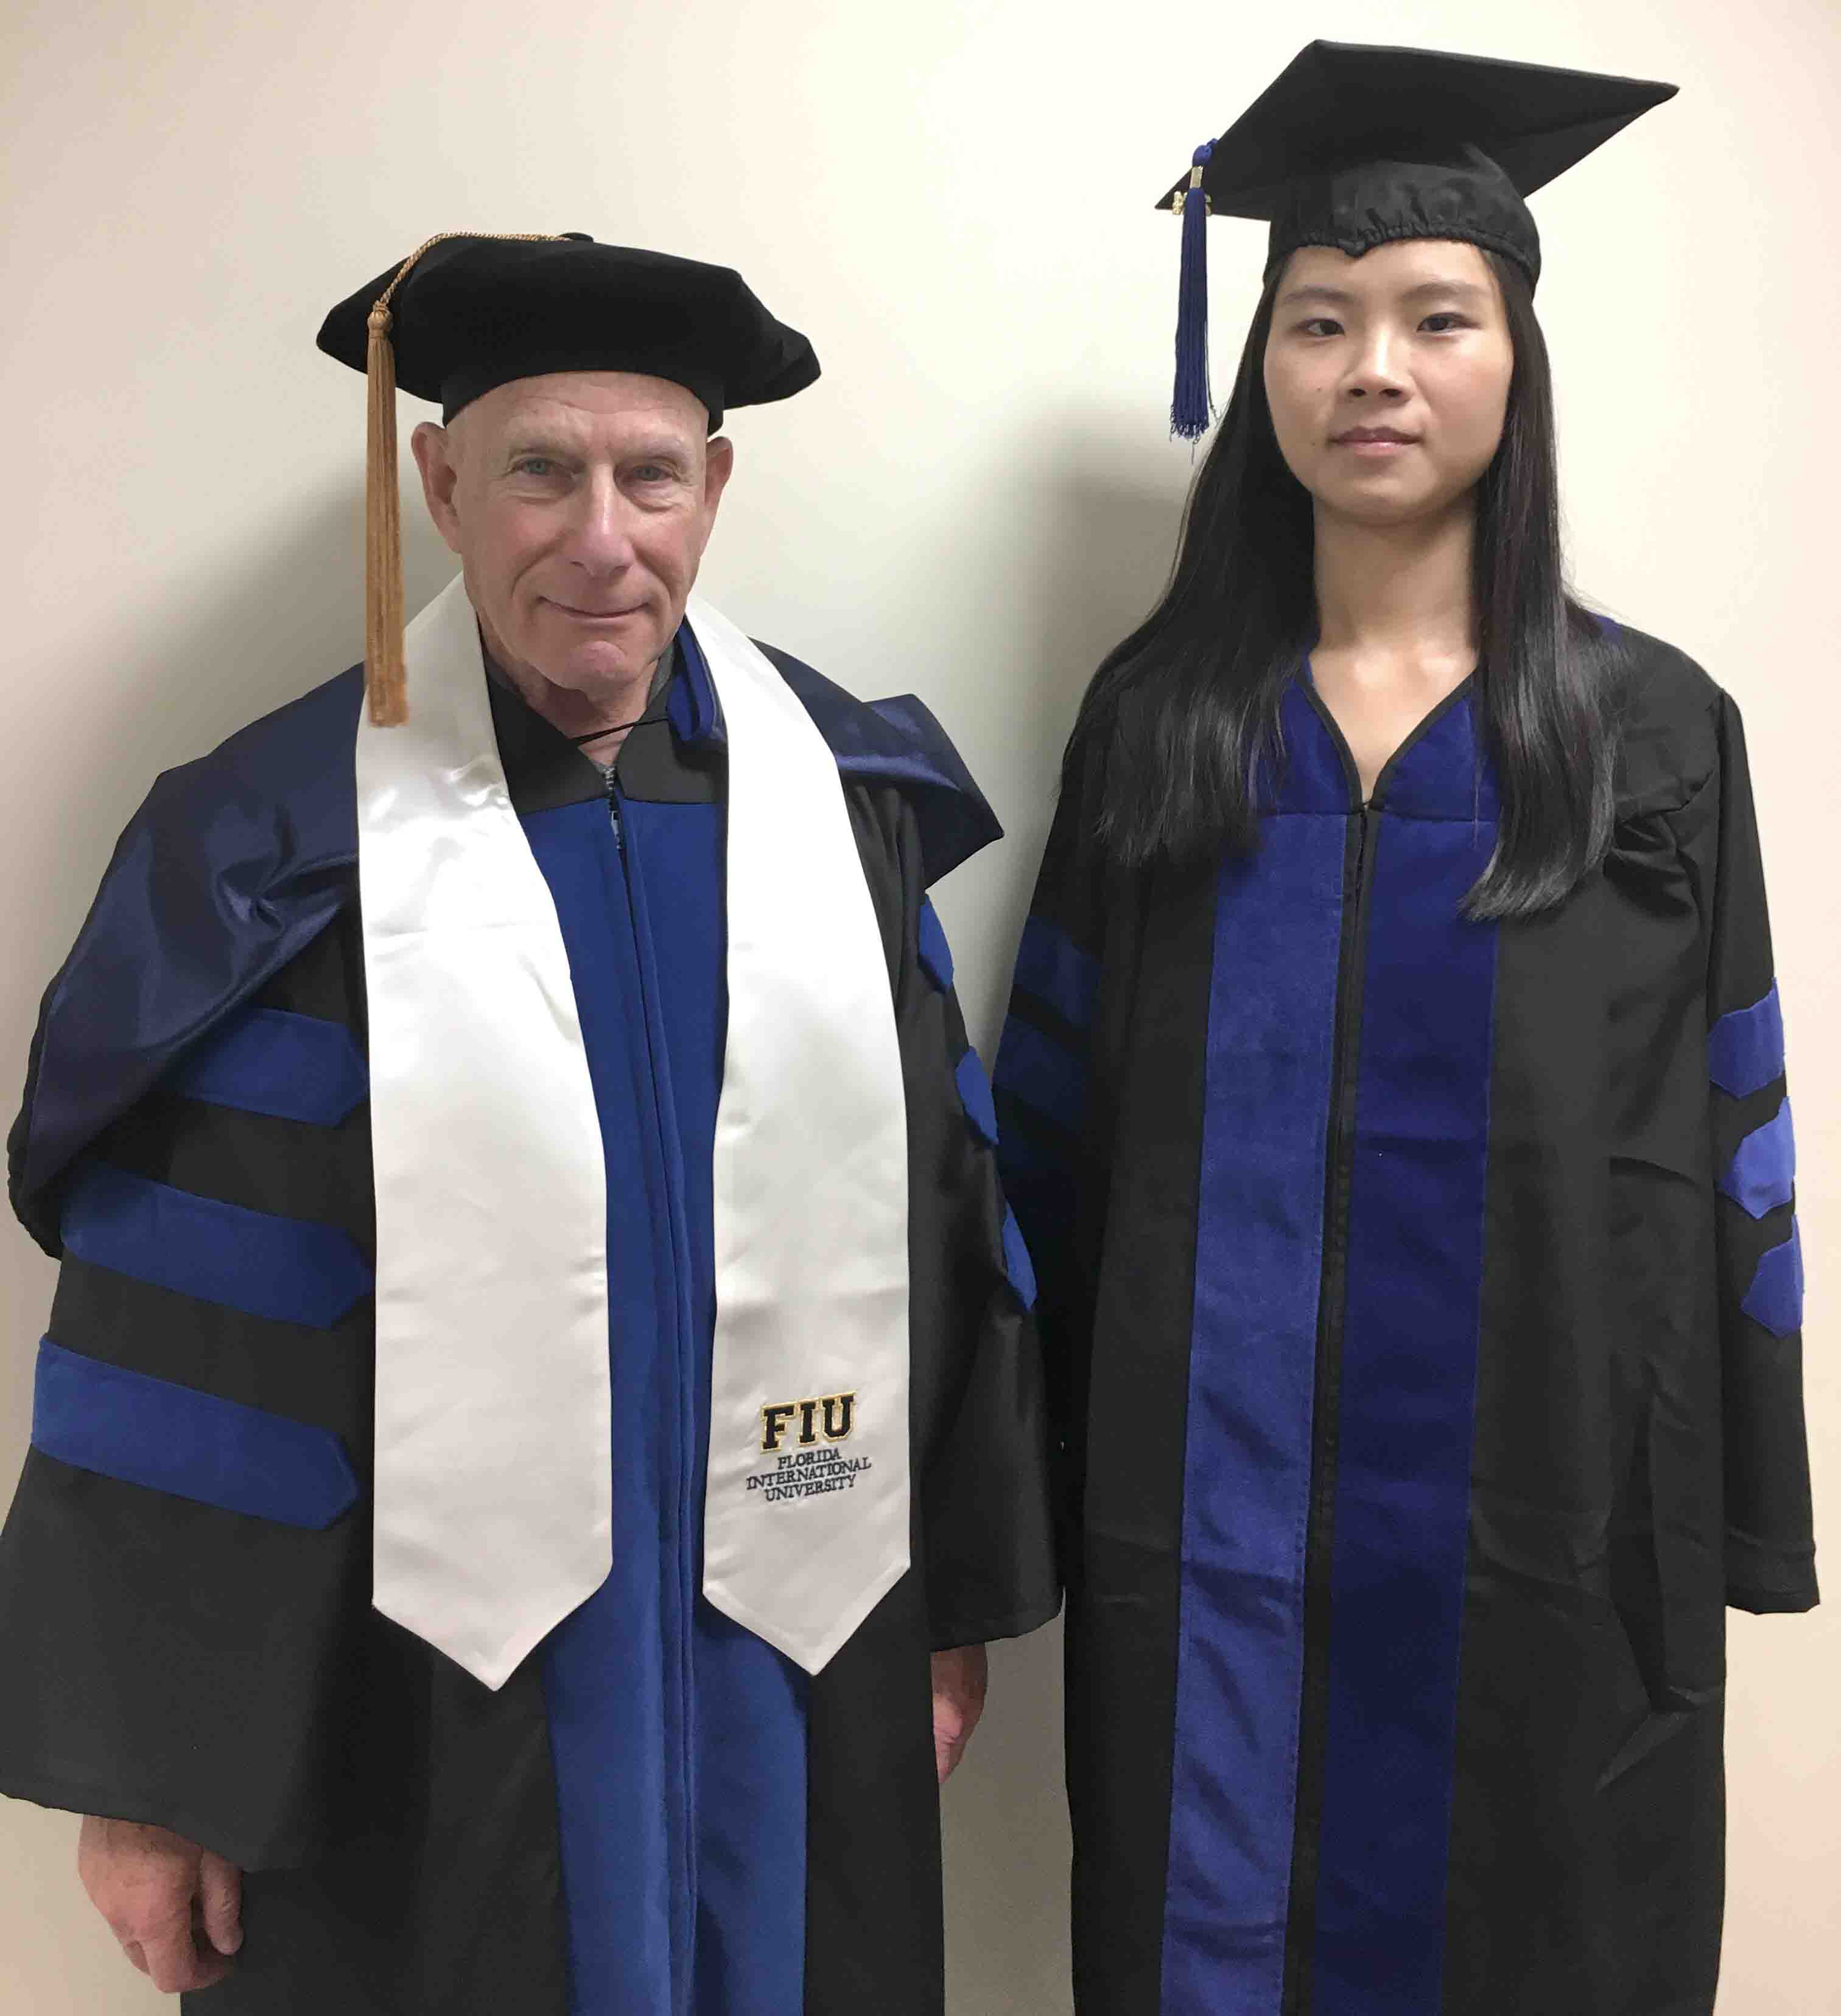 Prof. Barry Rosen, Ph.D. and Jiaojiao Li, M.D., Ph.D.